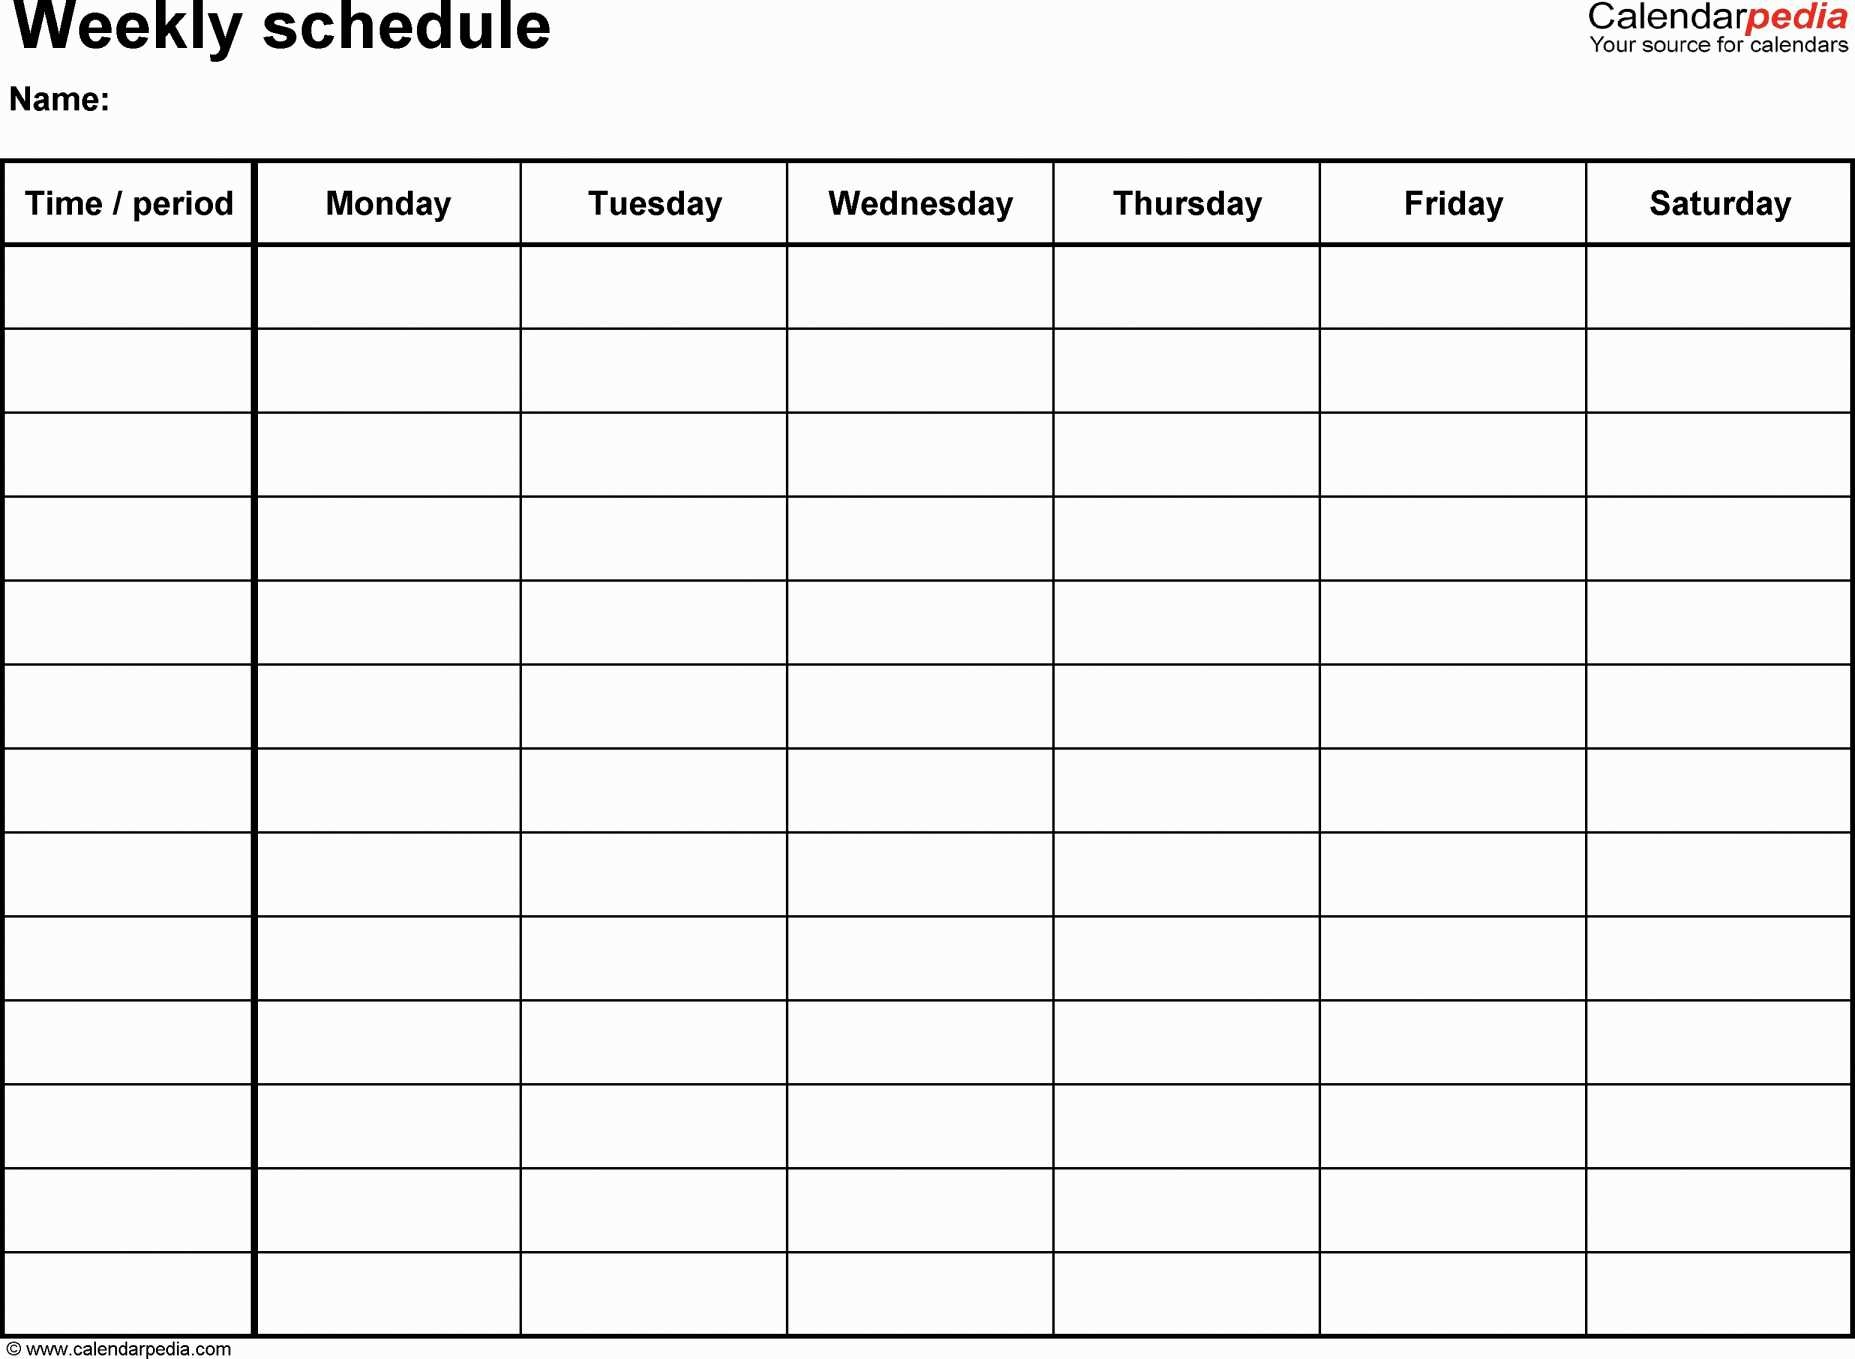 Blank Spreadsheet With Gridlines In Blank Spreadsheet With Gridlines Inspirational How To Print A Blank Blank Spreadsheet With Gridlines Printable Spreadshee Printable Spreadshee blank spreadsheet with gridlines